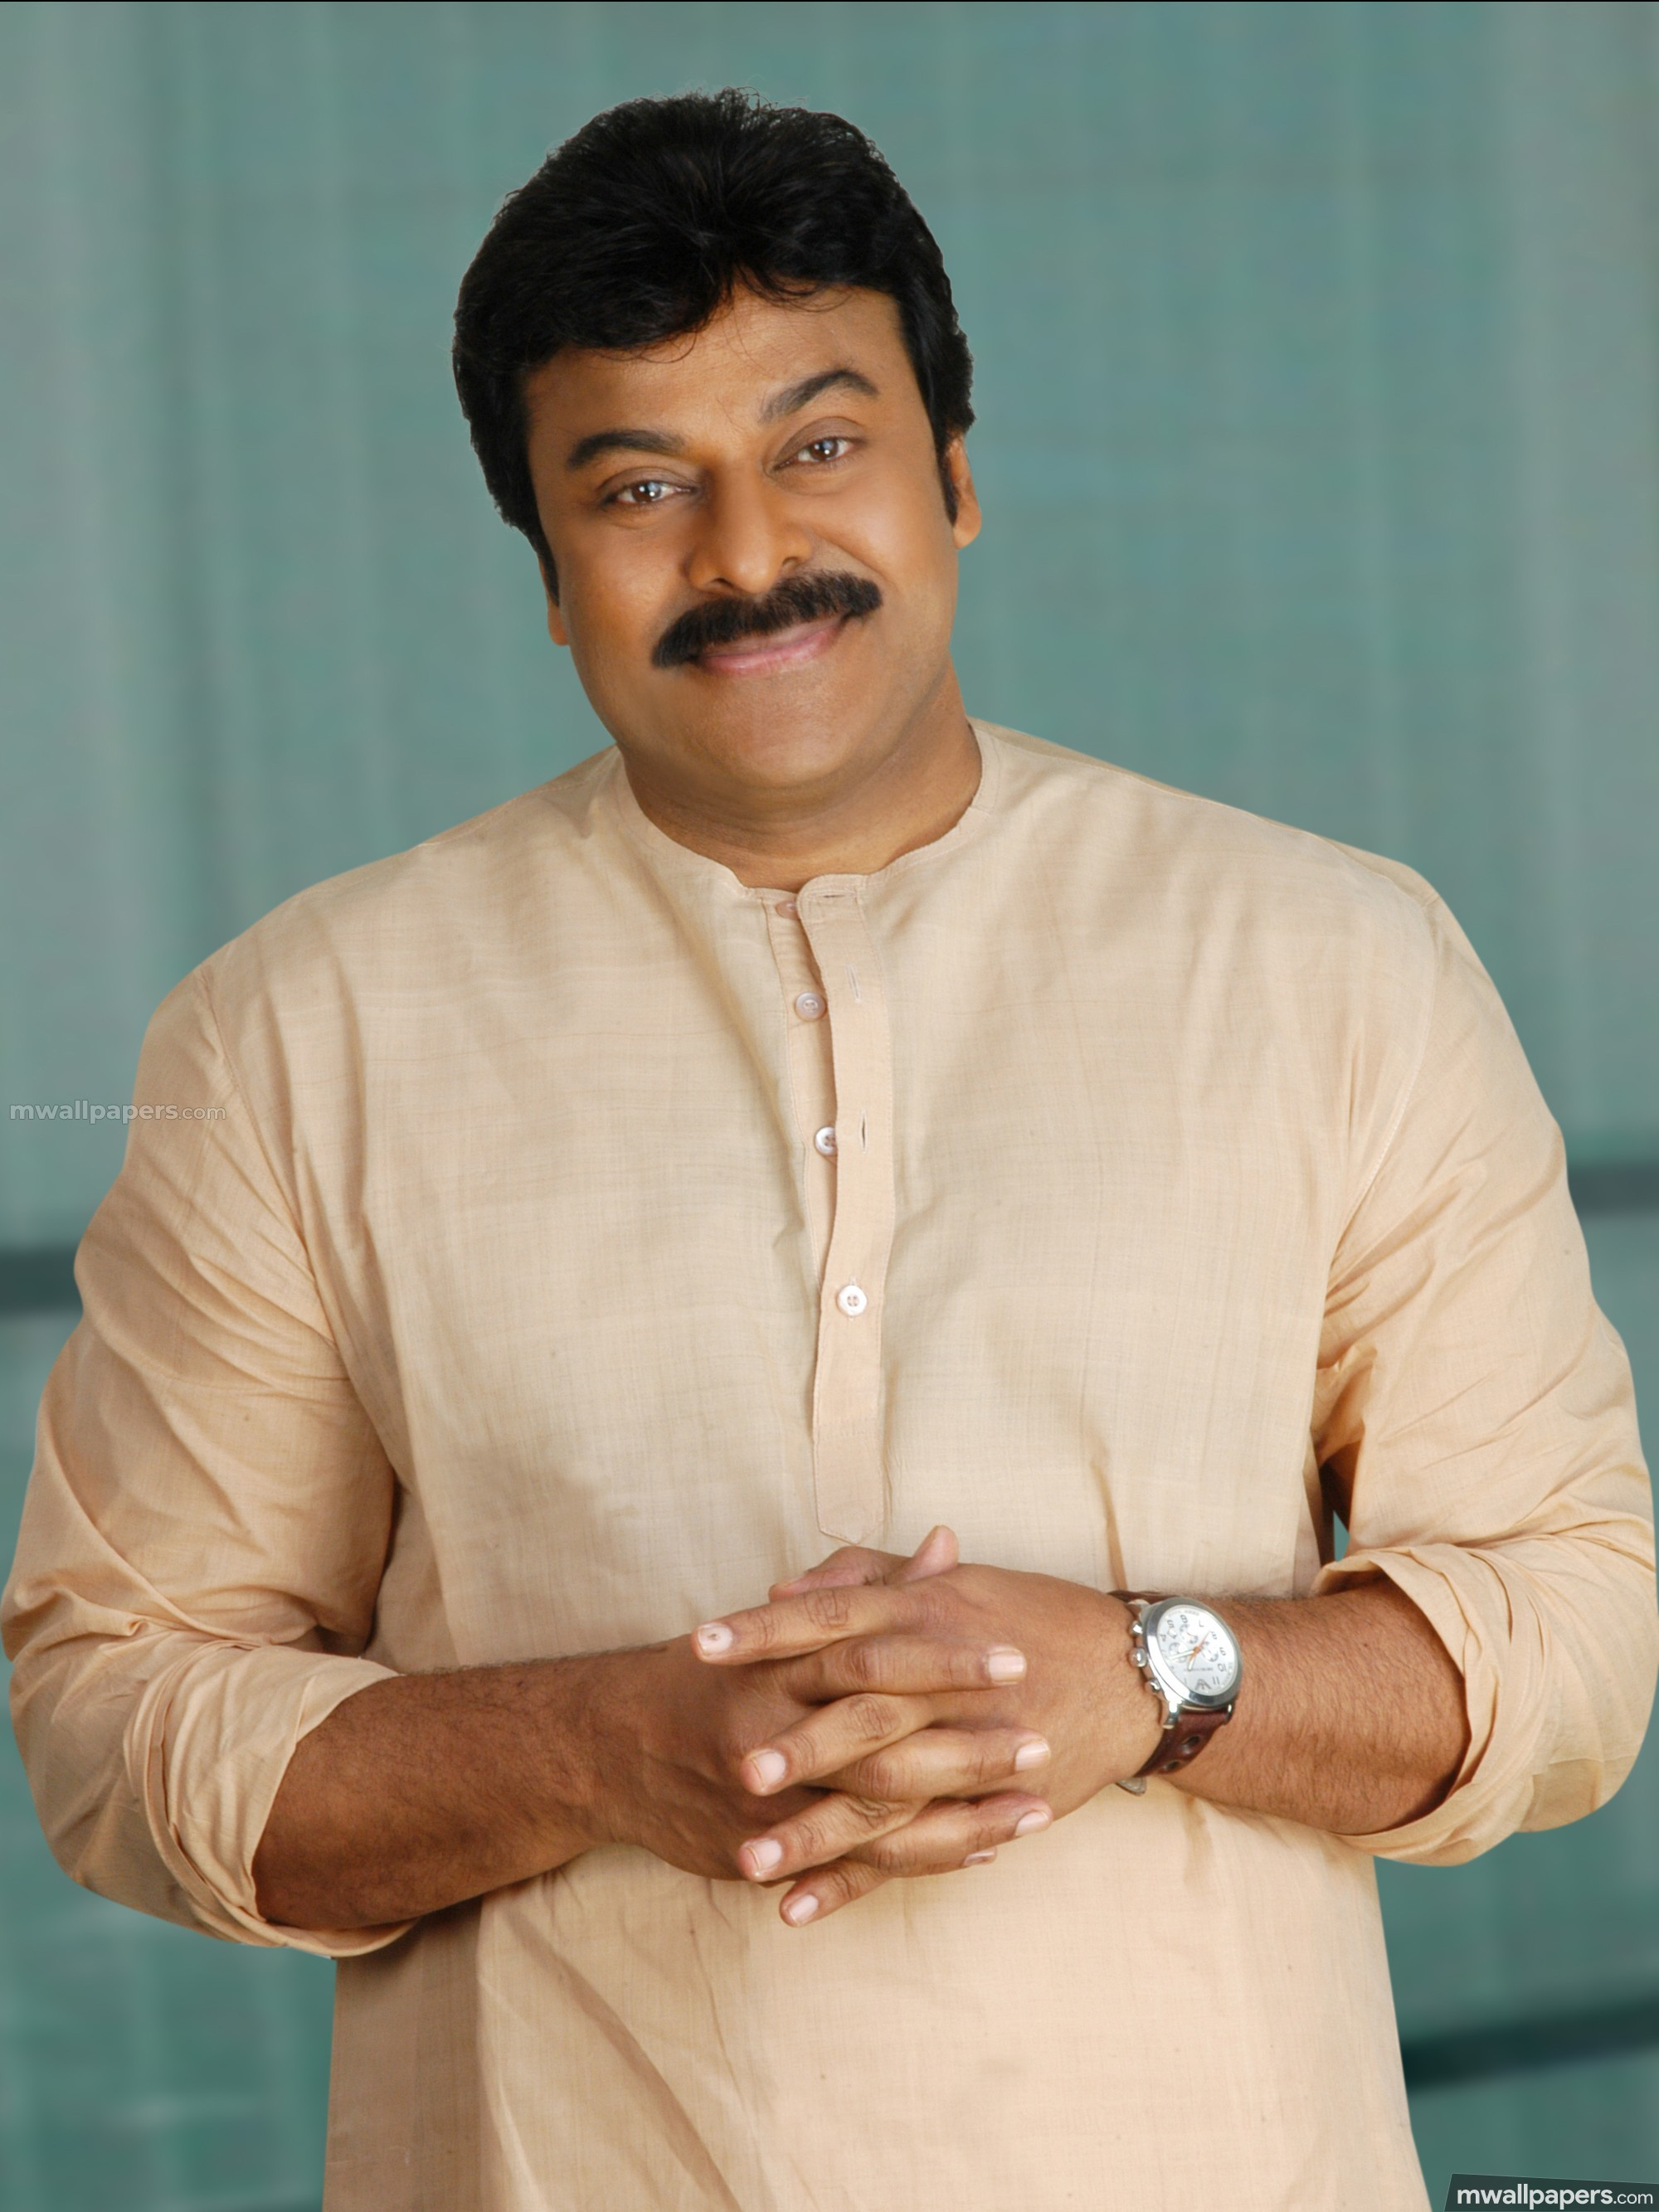 165 chiranjeevi hd wallpapers images 1080p 2000x2667 2020 chiranjeevi hd wallpapers images 1080p